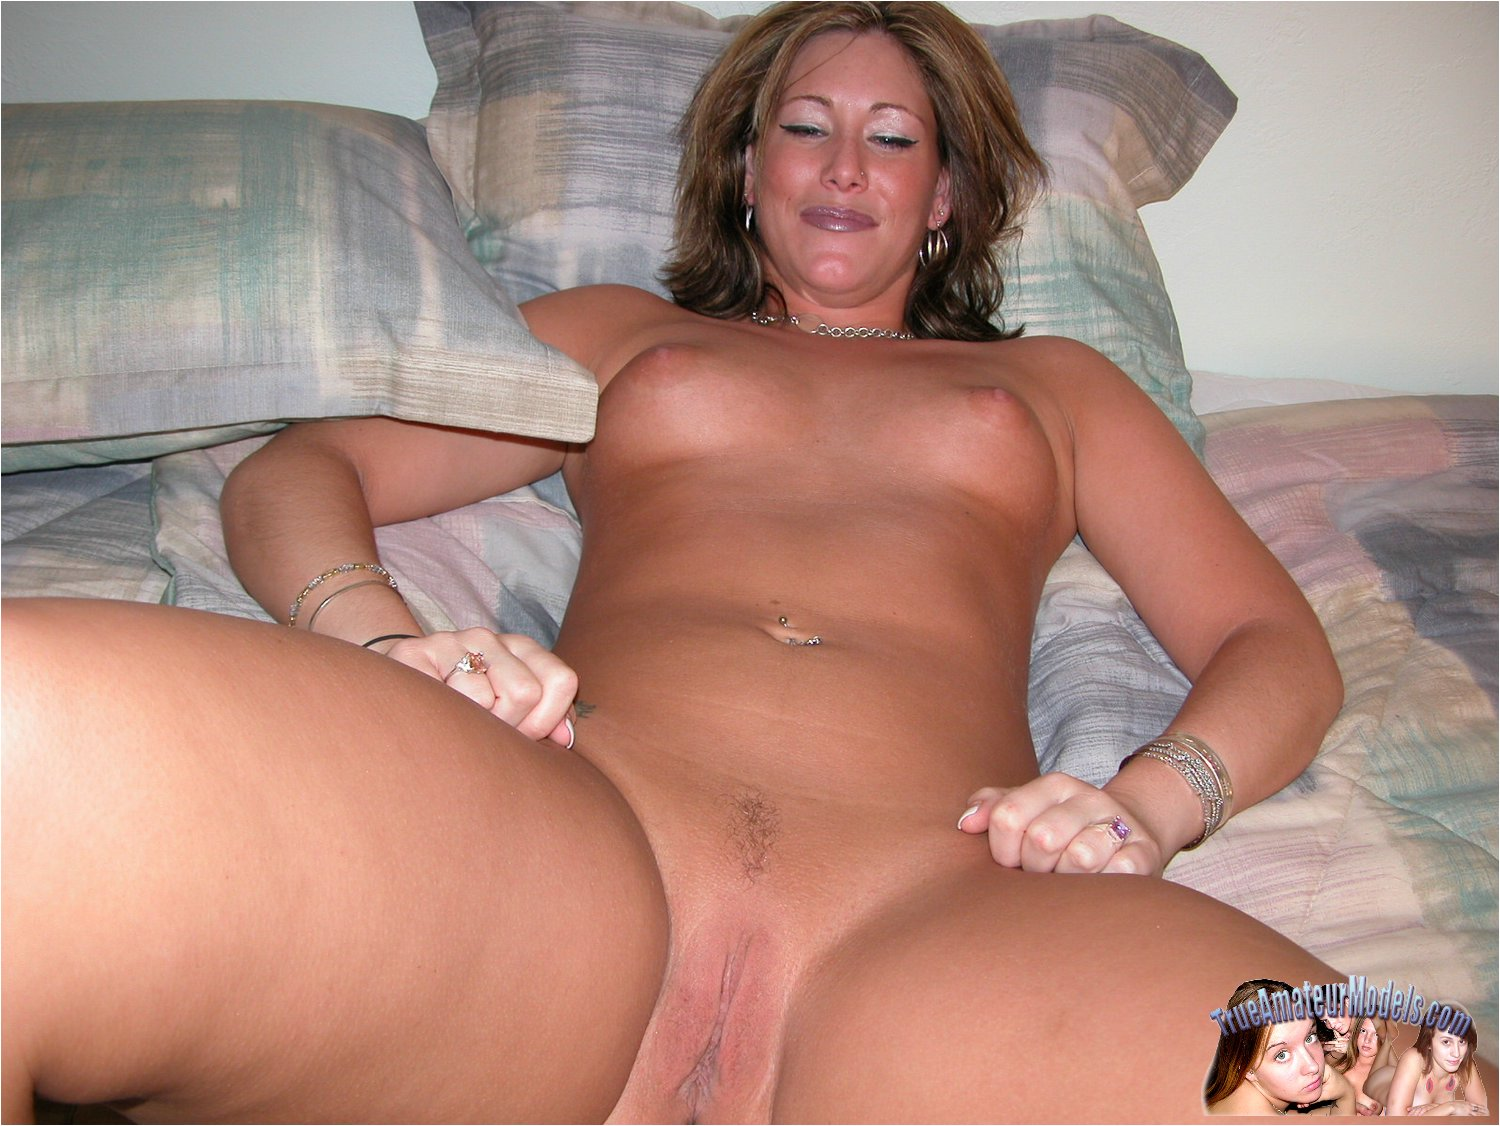 year old amateur girl spreads and gets pounded hard from true amateur